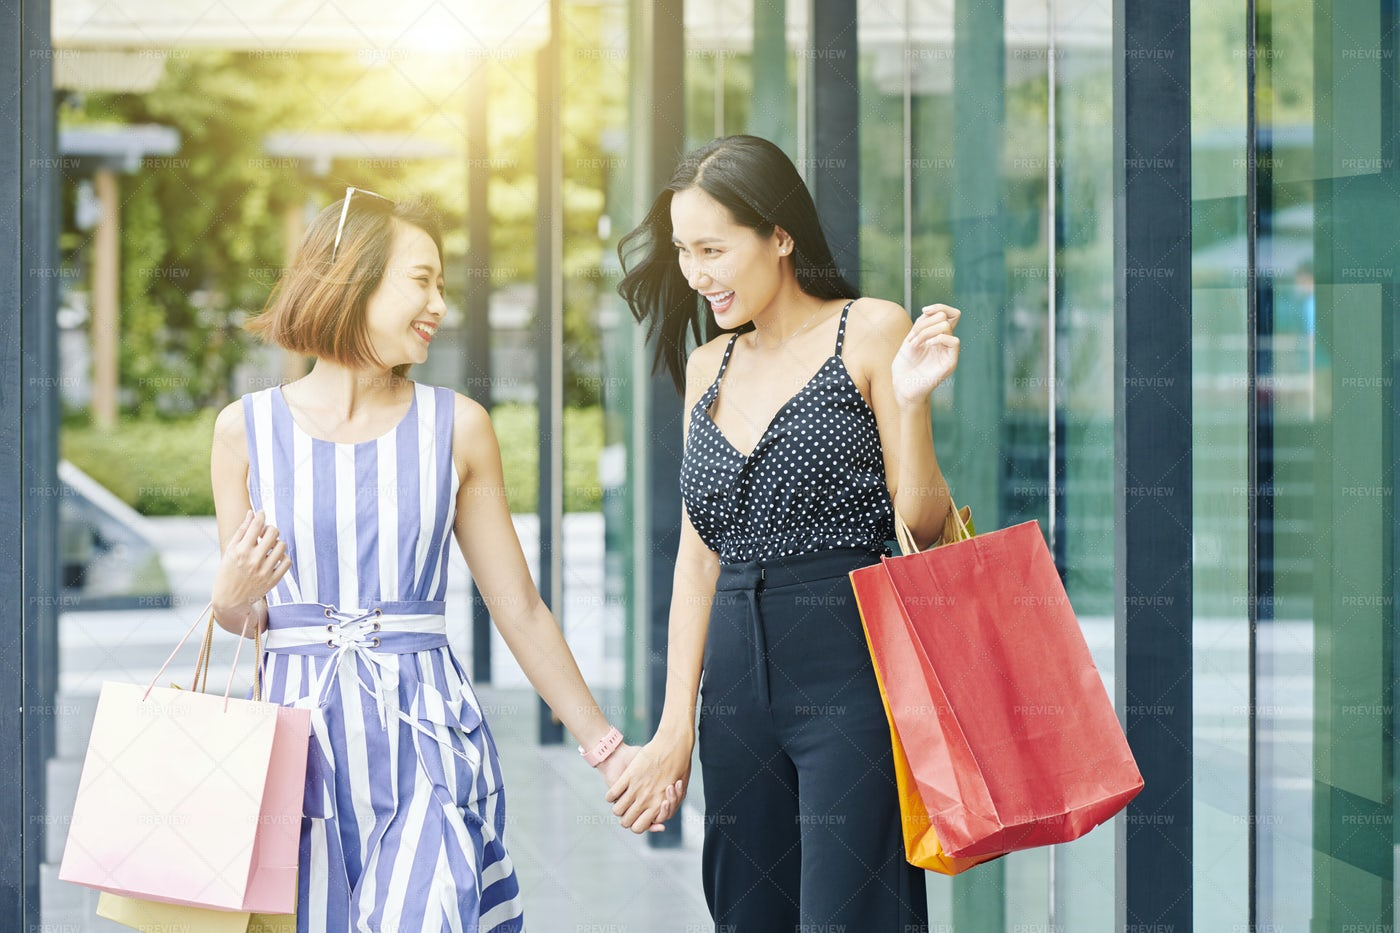 Happy Day For Shopping: Stock Photos